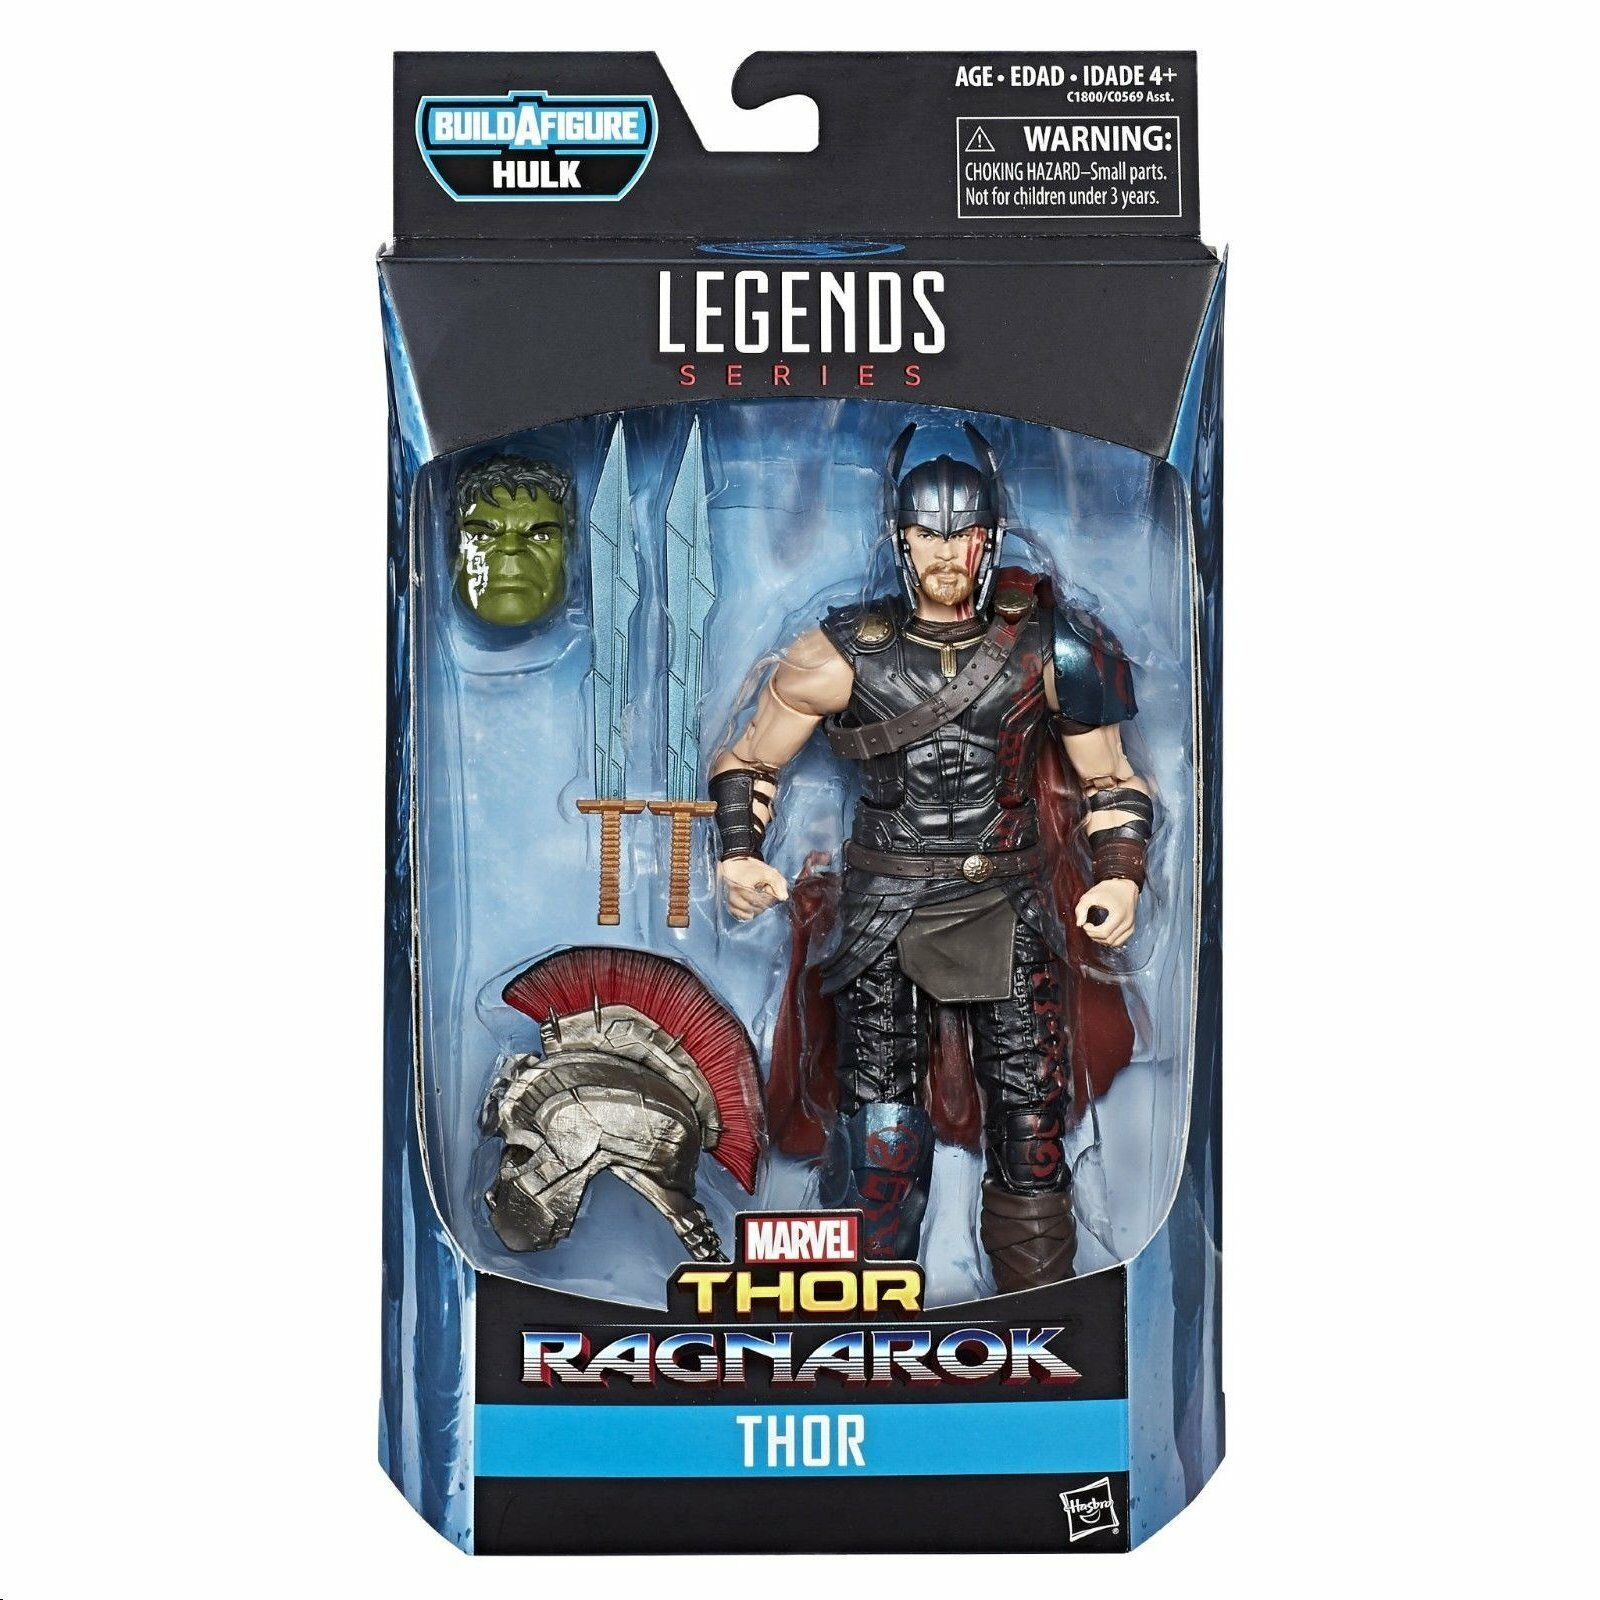 THOR : RAGNAROK ( 2017 ) VHTF MARVEL LEGENDS ( HULK SERIES ) ACTION FIGURE  1